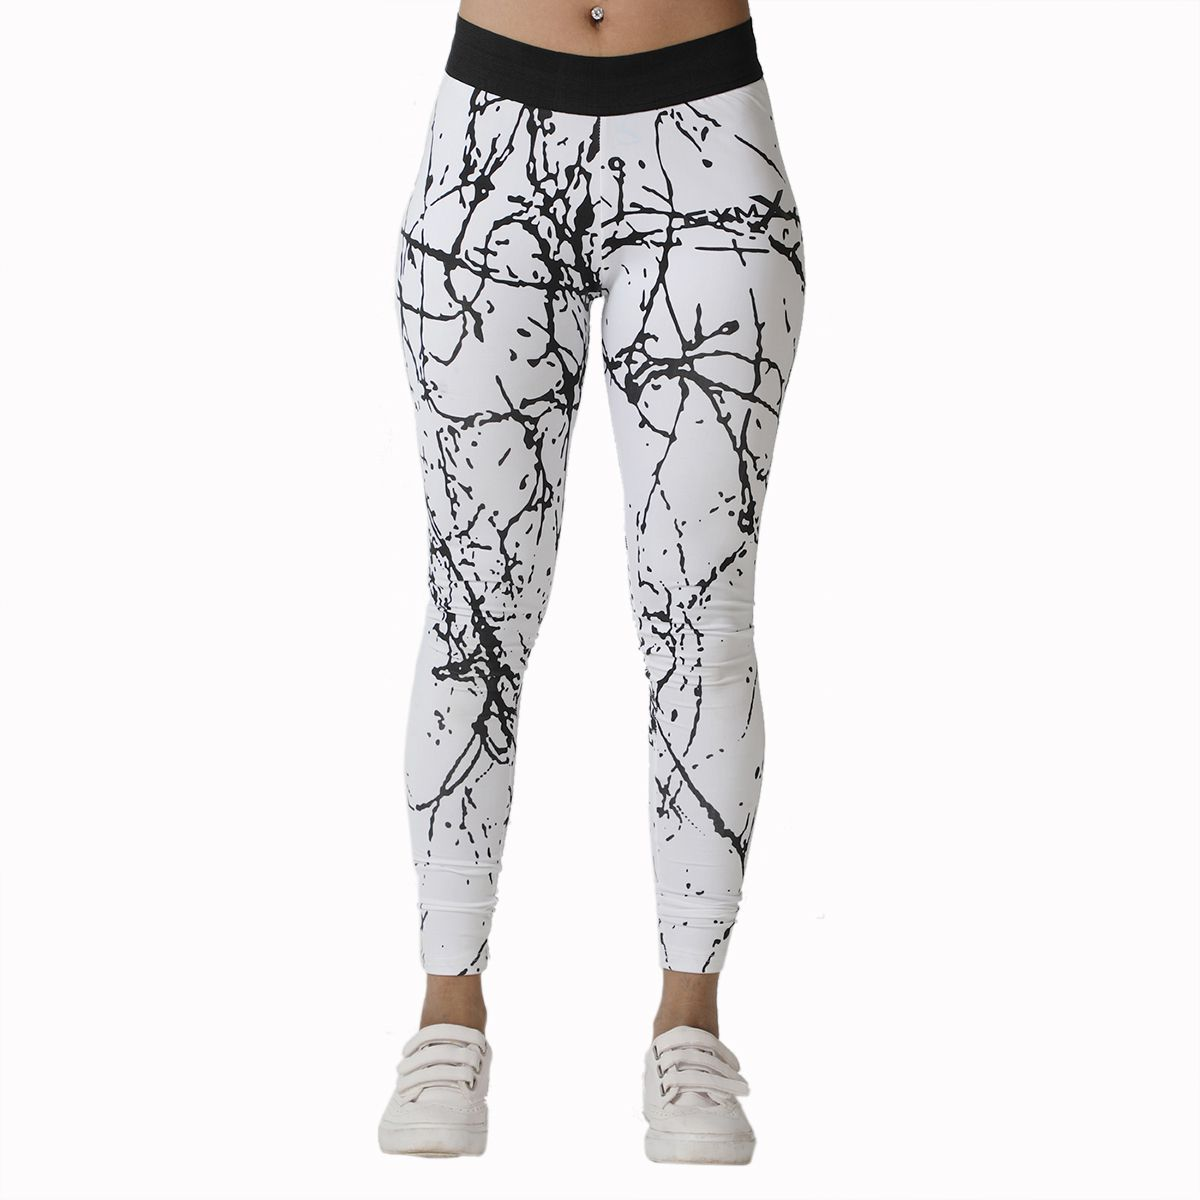 GymX Womens Polyester Sculpted Leggings- Marble Print